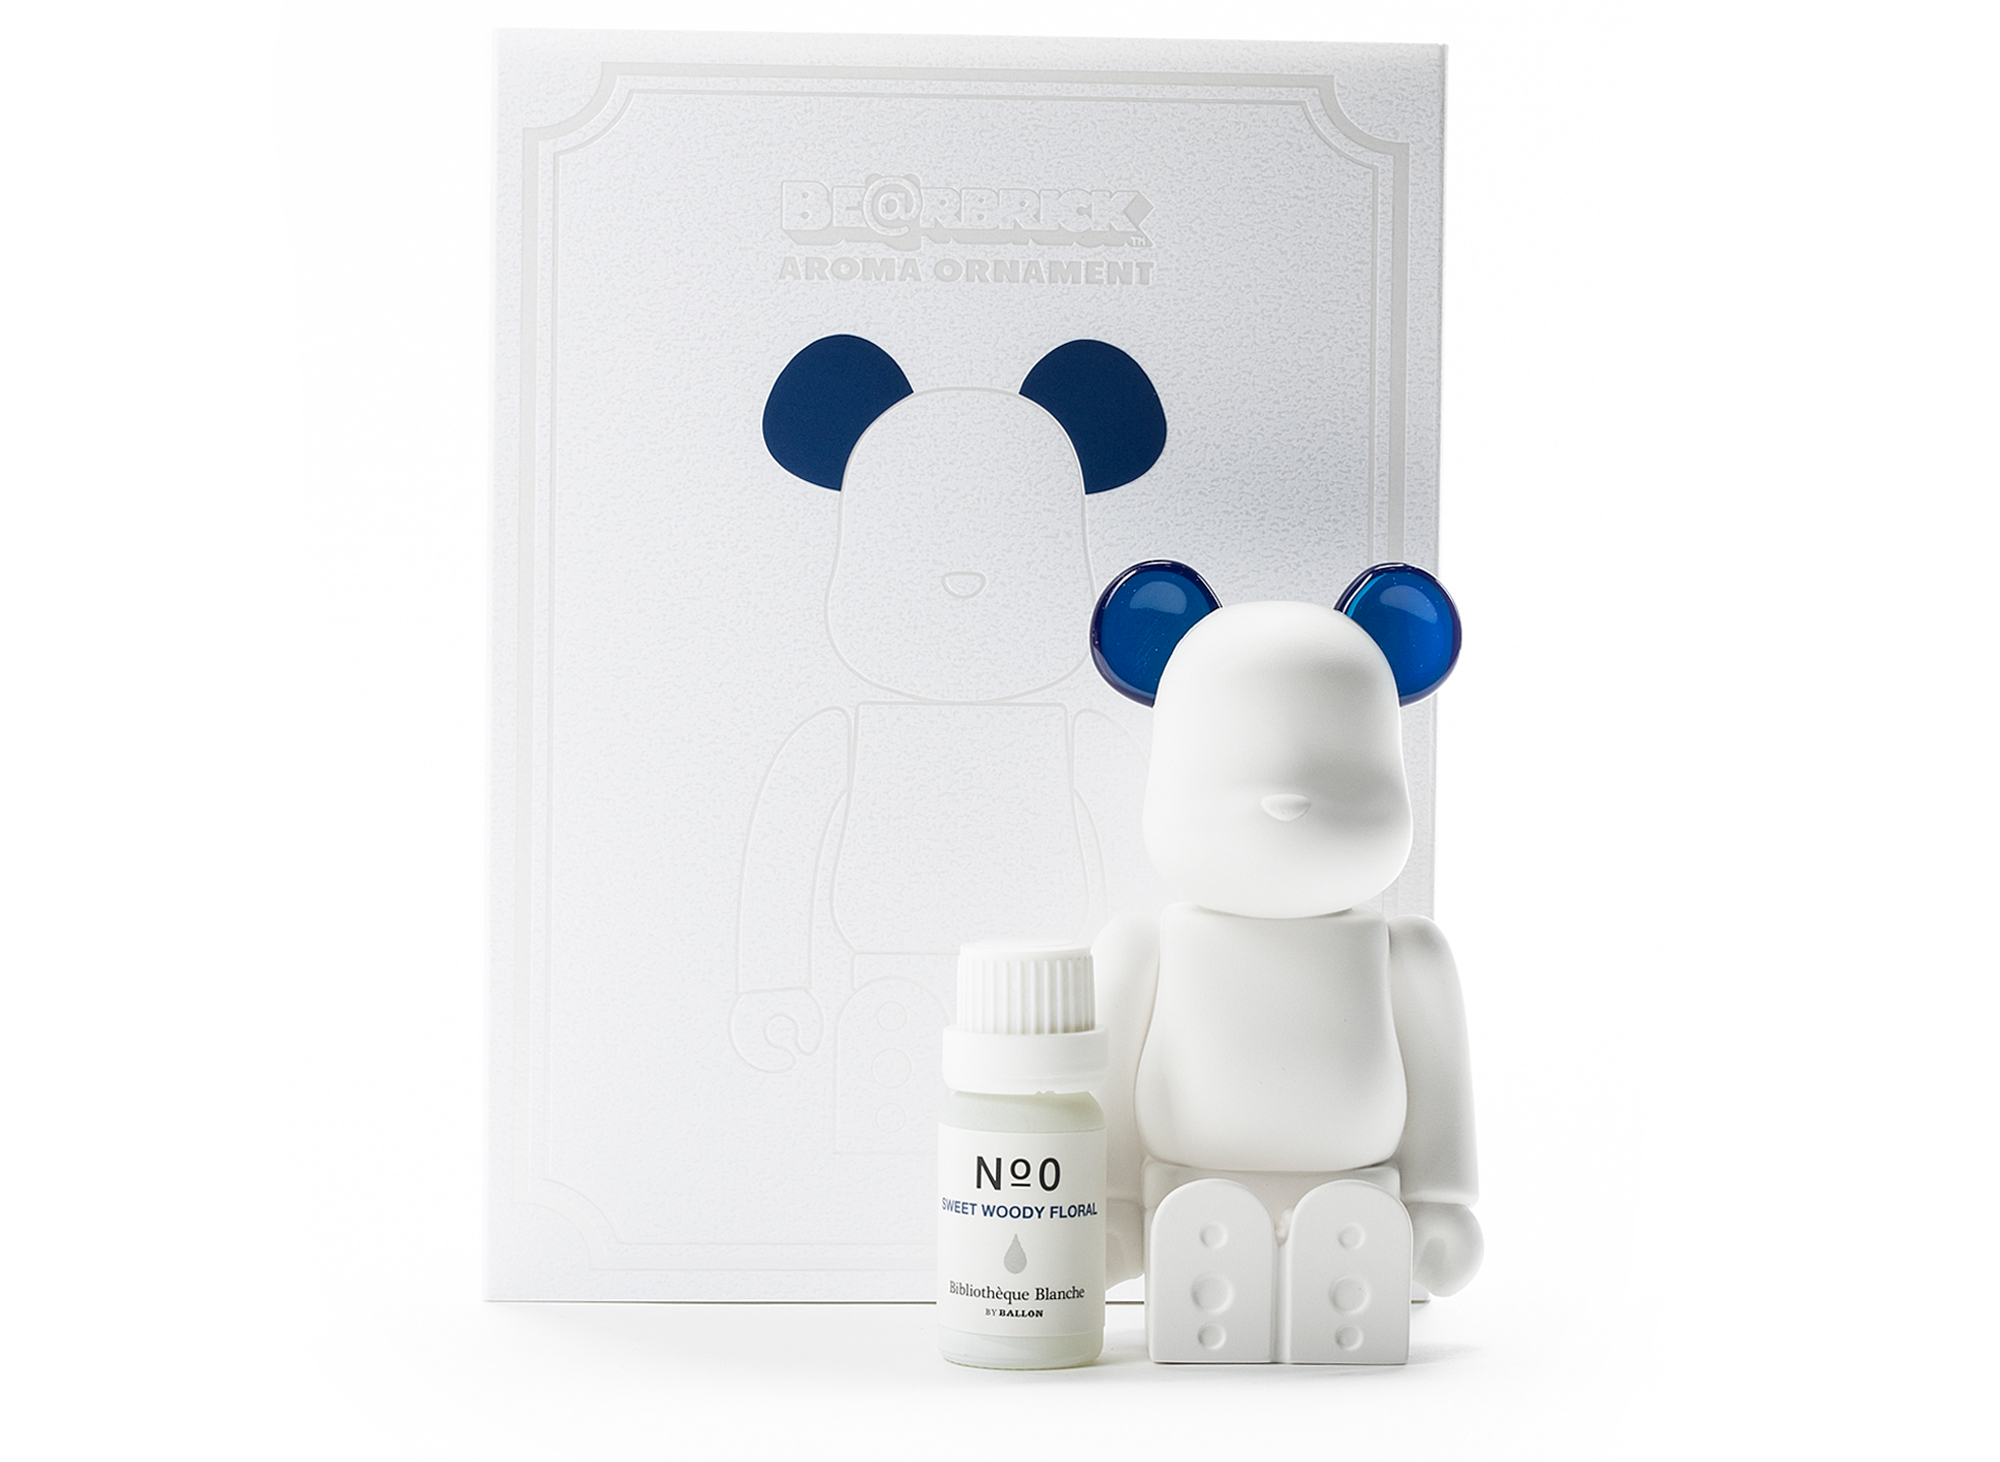 Ballon x Medicom Toy Bearbrick Aroma Ornament No.0 - Navy